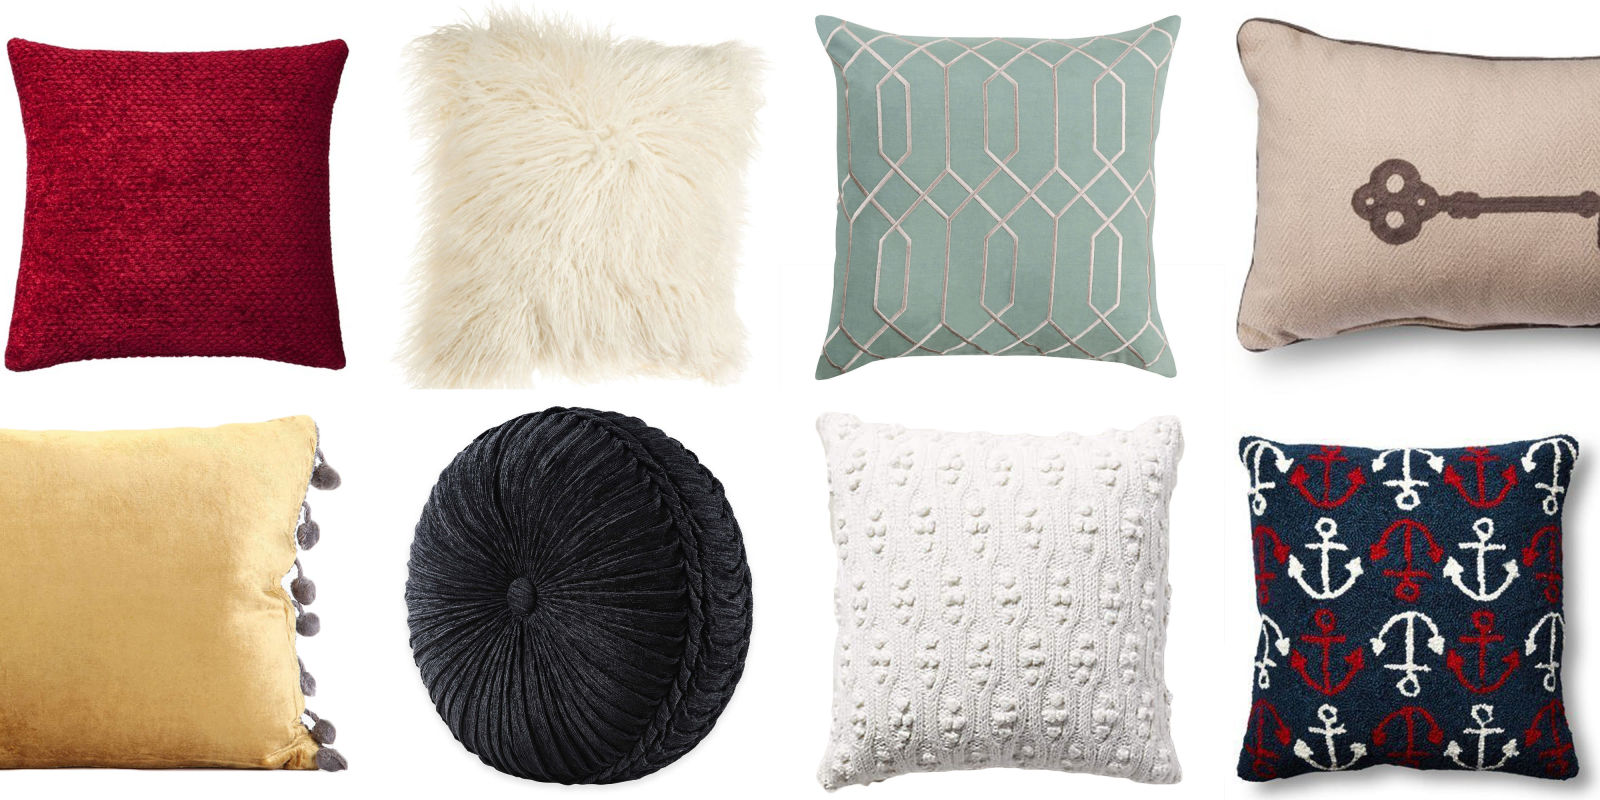 10 decorative throw pillows for the couch